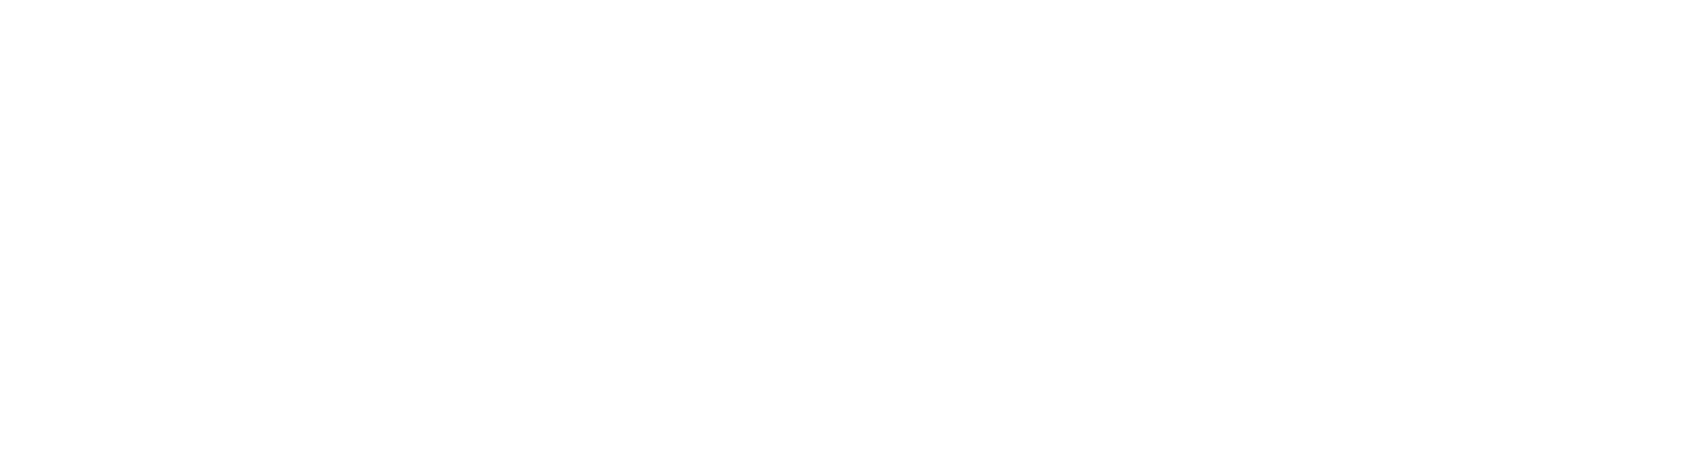 hopealways.png